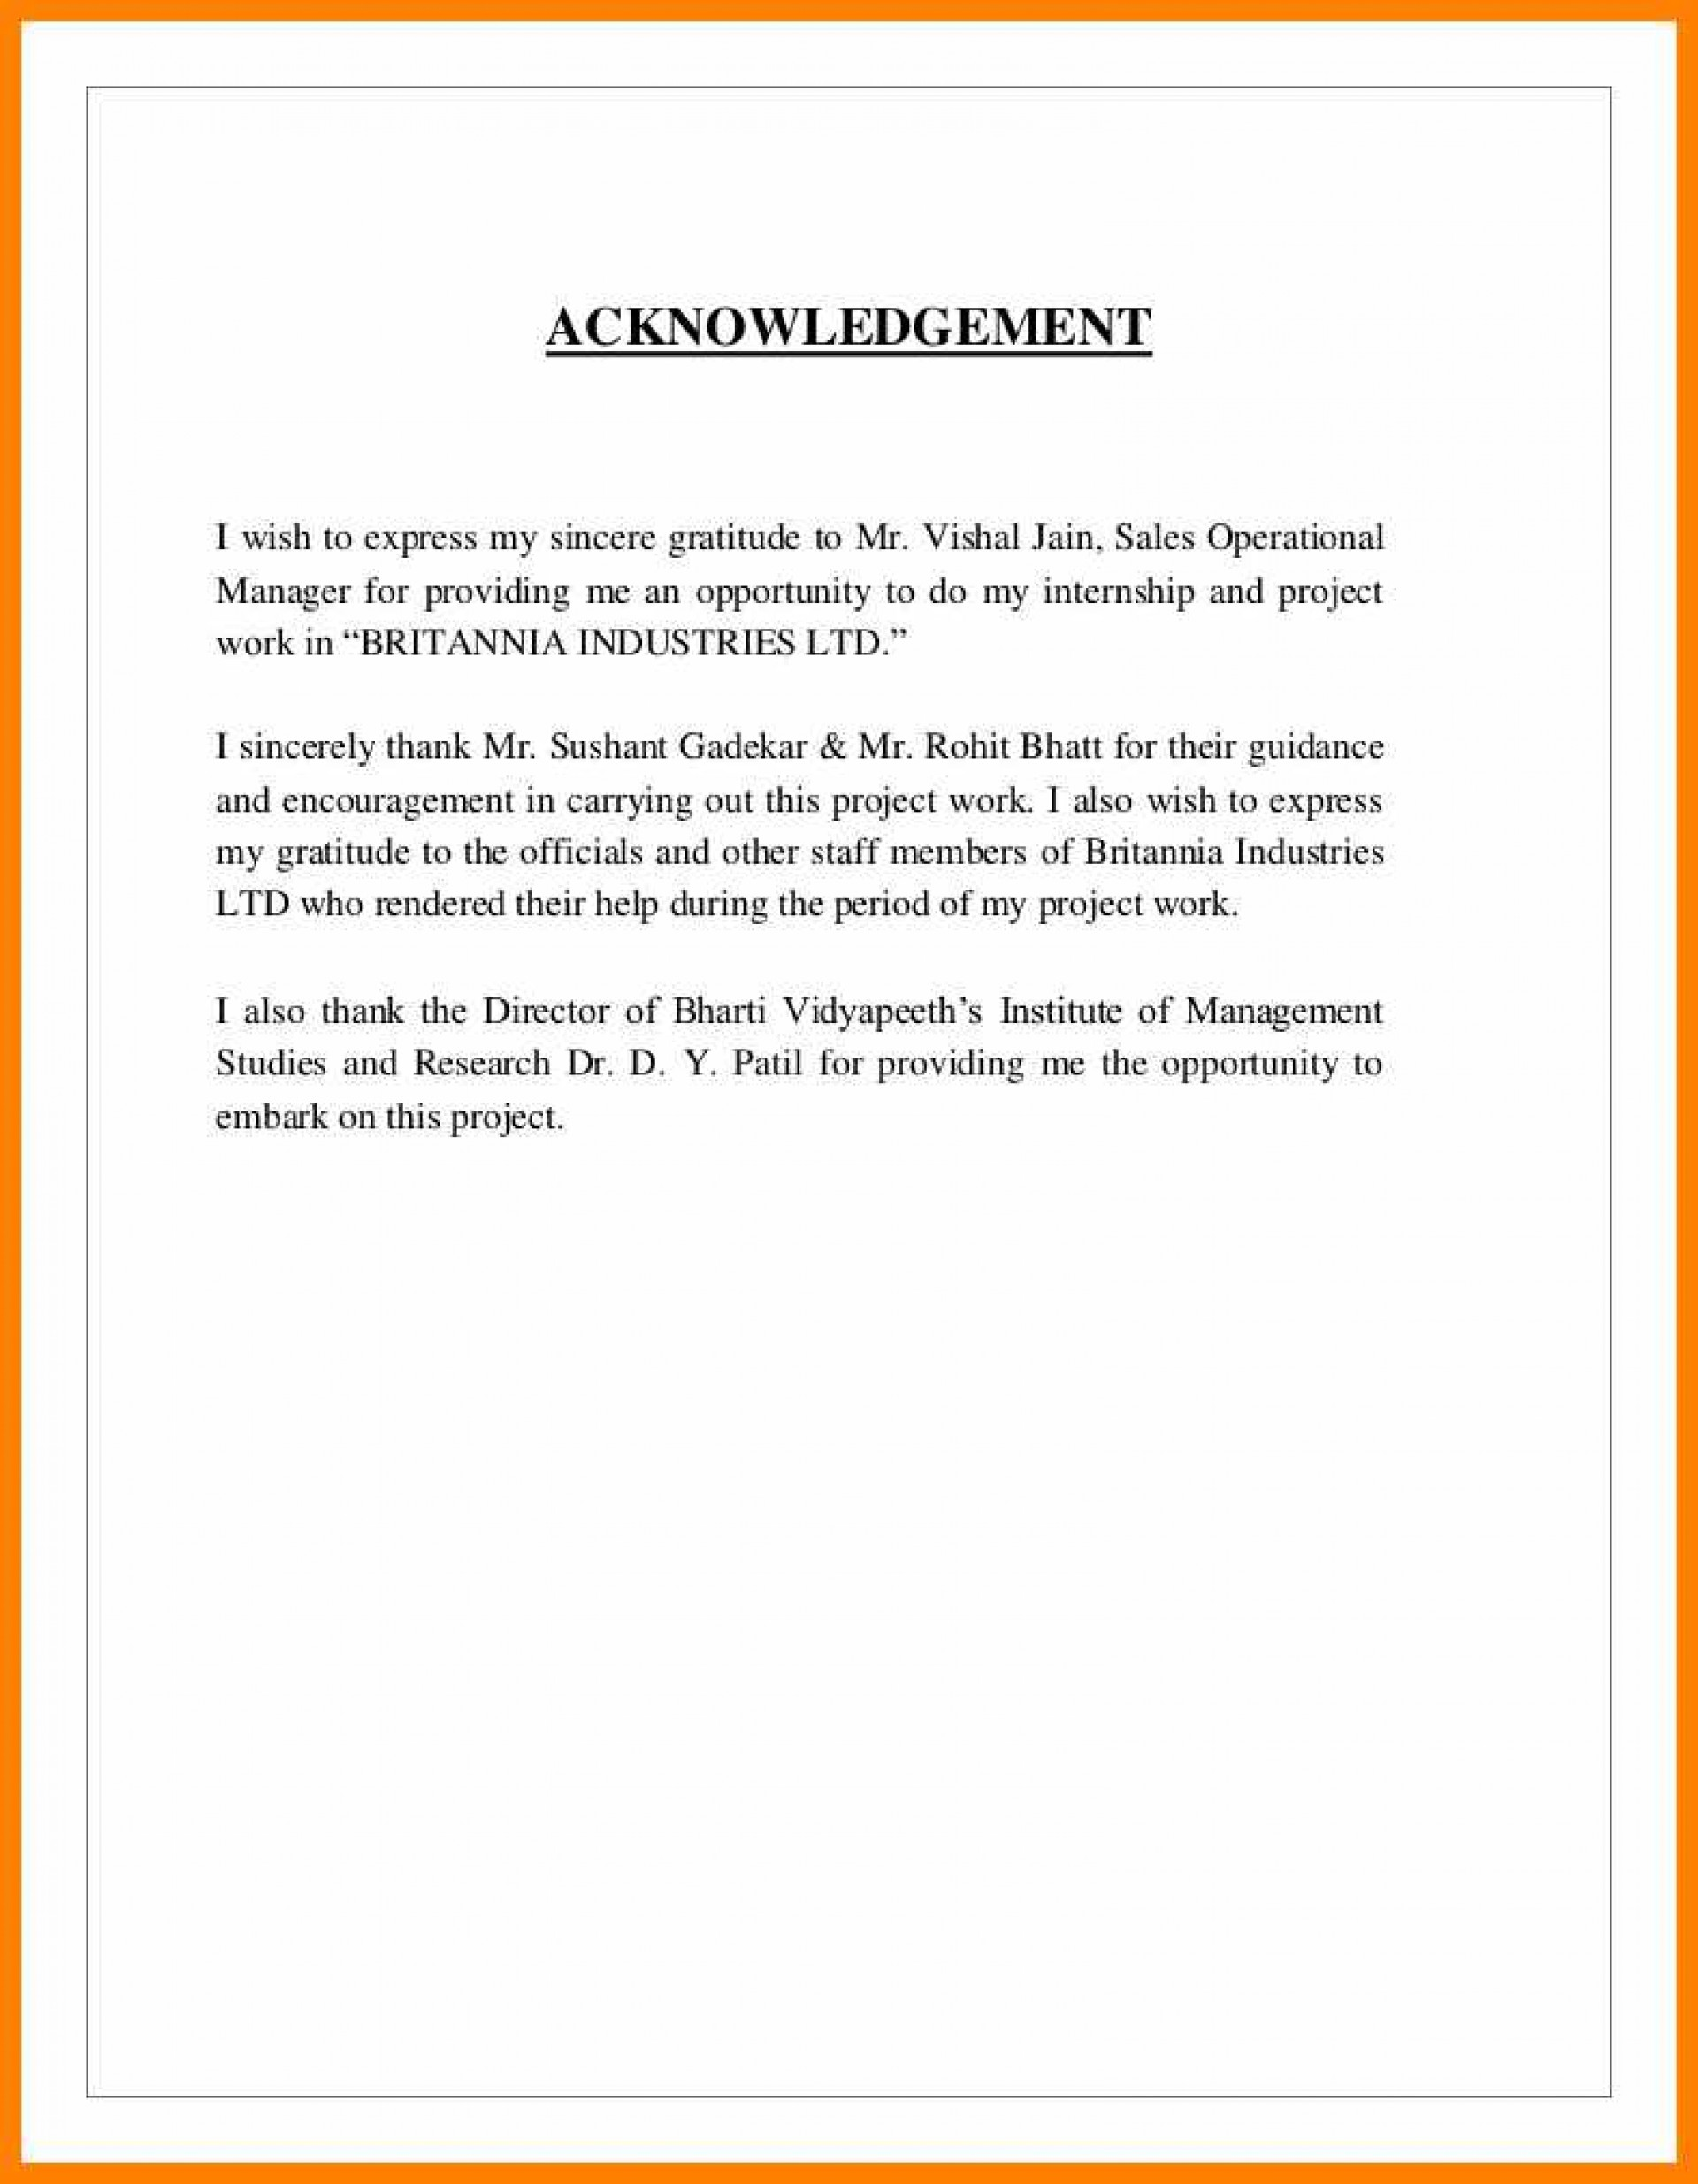 003 Research Paper Acknowledgement For Definition Acknowledgment Examples Uncategorized Internship Report Essential Formidable Of In A 1920